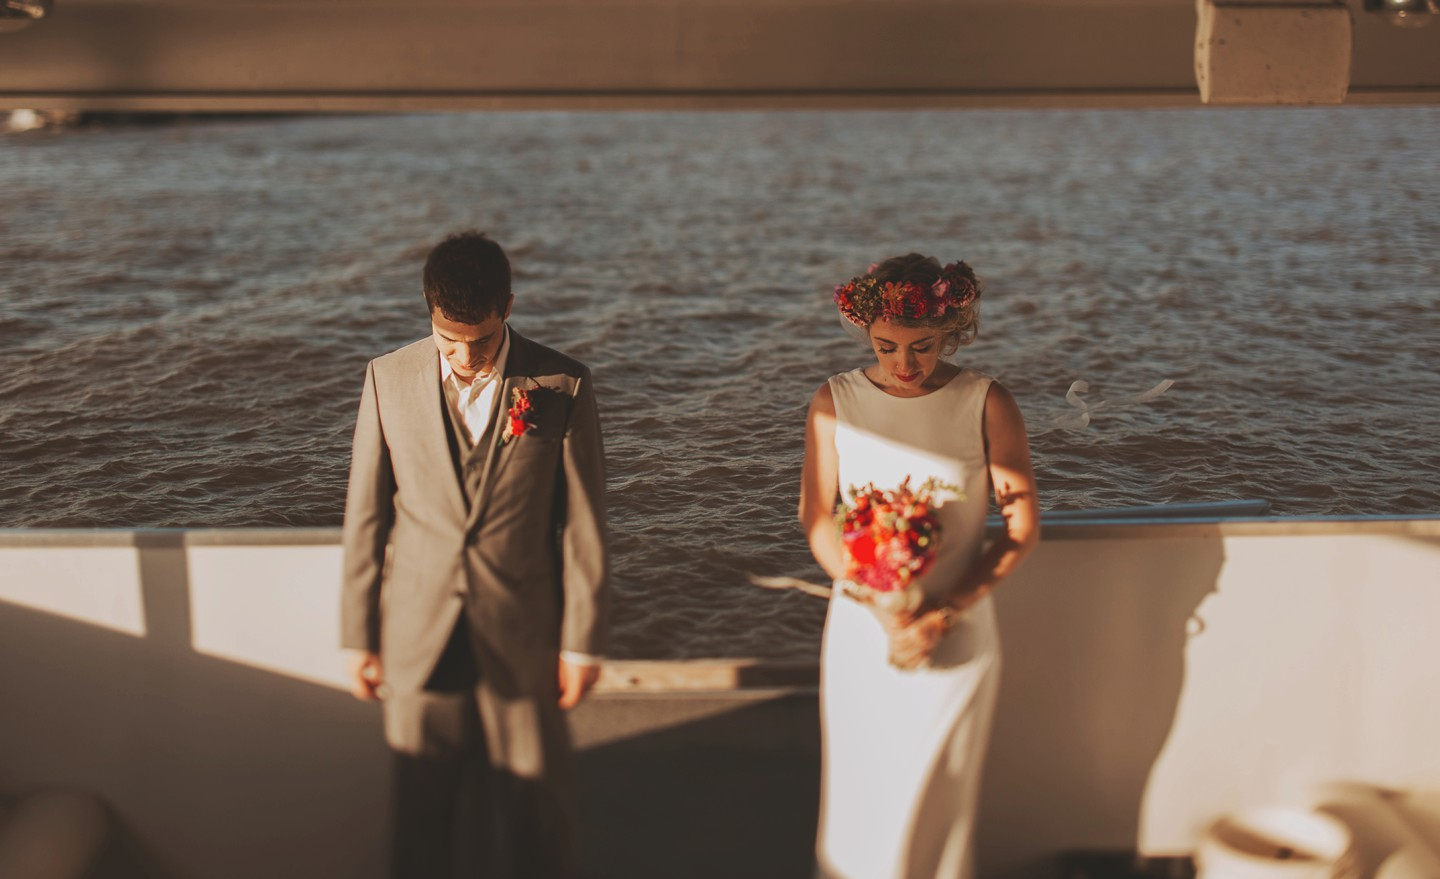 artistic portrait on boat of bride and groom